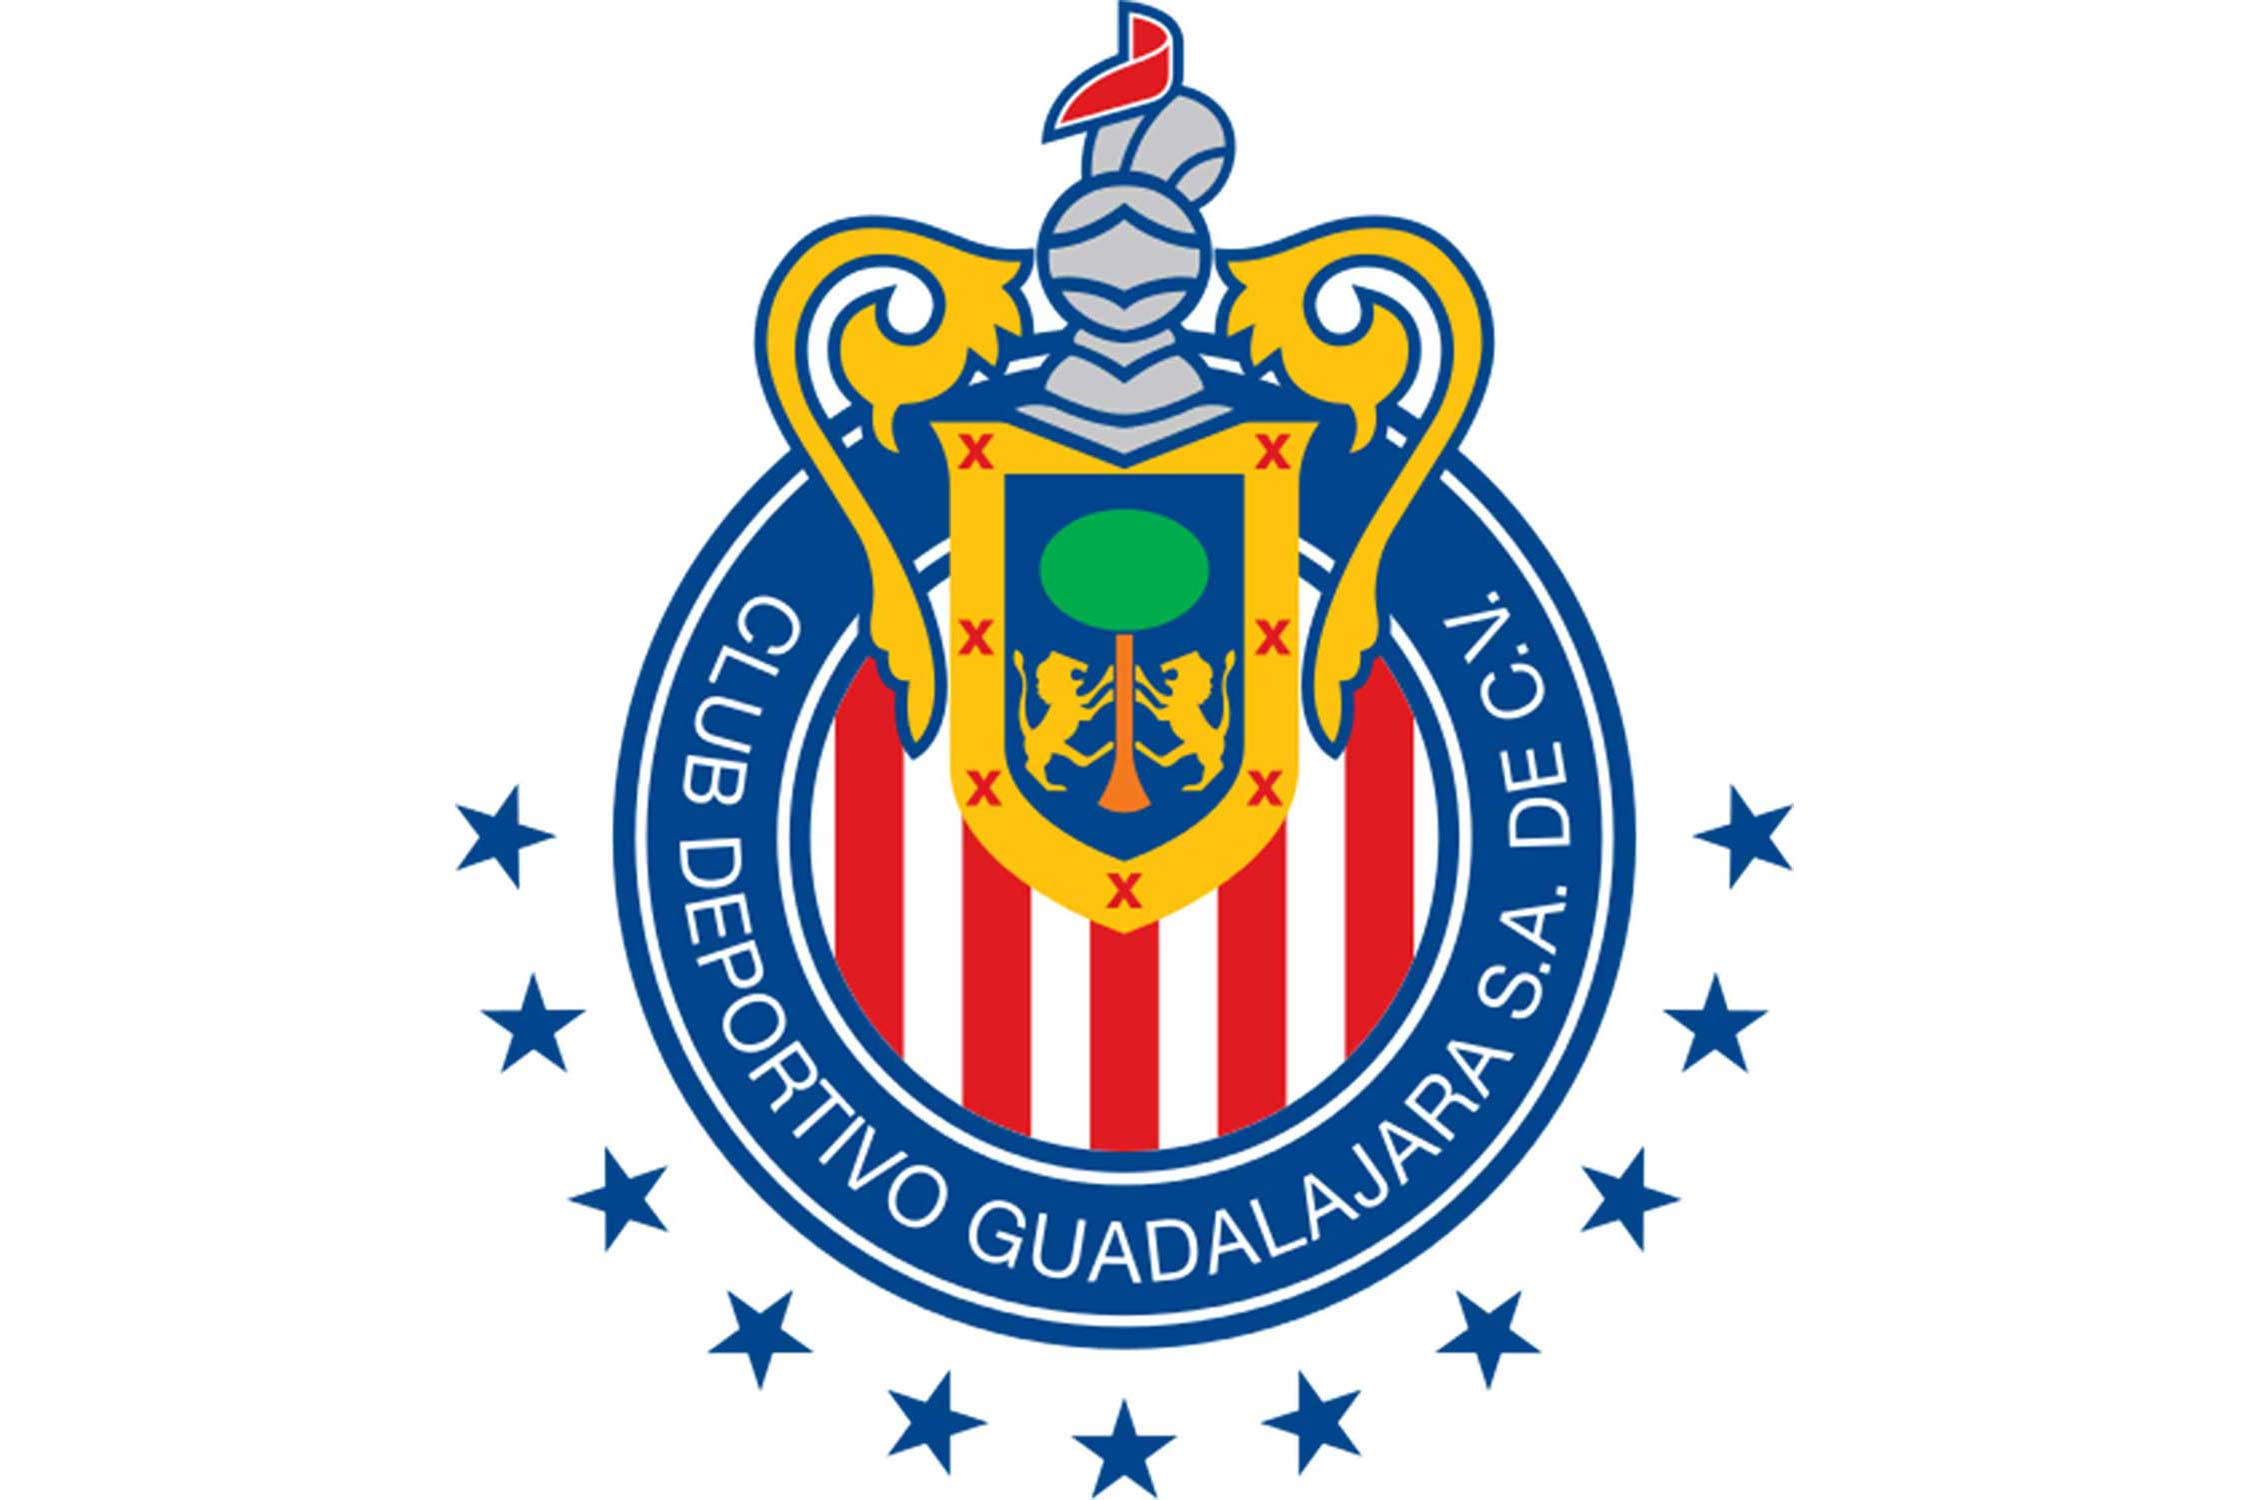 The crown and helmet come from the coat of arms of Guadalajara, granted to the city by Charles V in 1539. The red and white stripes are a reference to the flag of the Belgian city of Brugge, the hometown of club founder Edgar Everaert